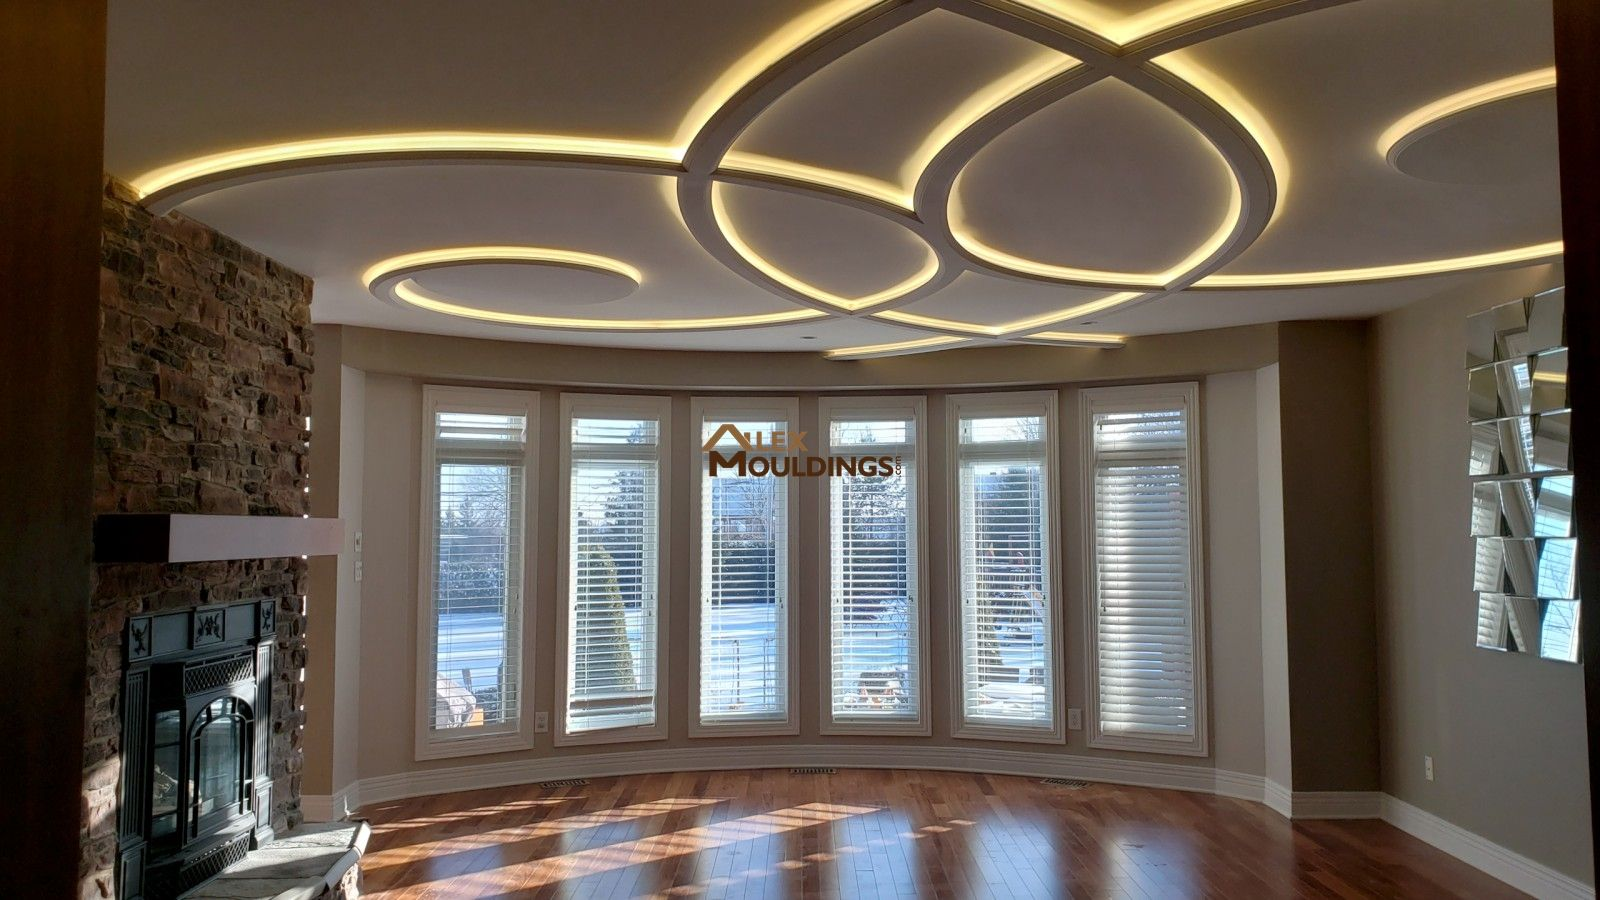 A Modern Coffered Ceiling Design Is The Oldest Recipe For Successful Home Interior Decorations An